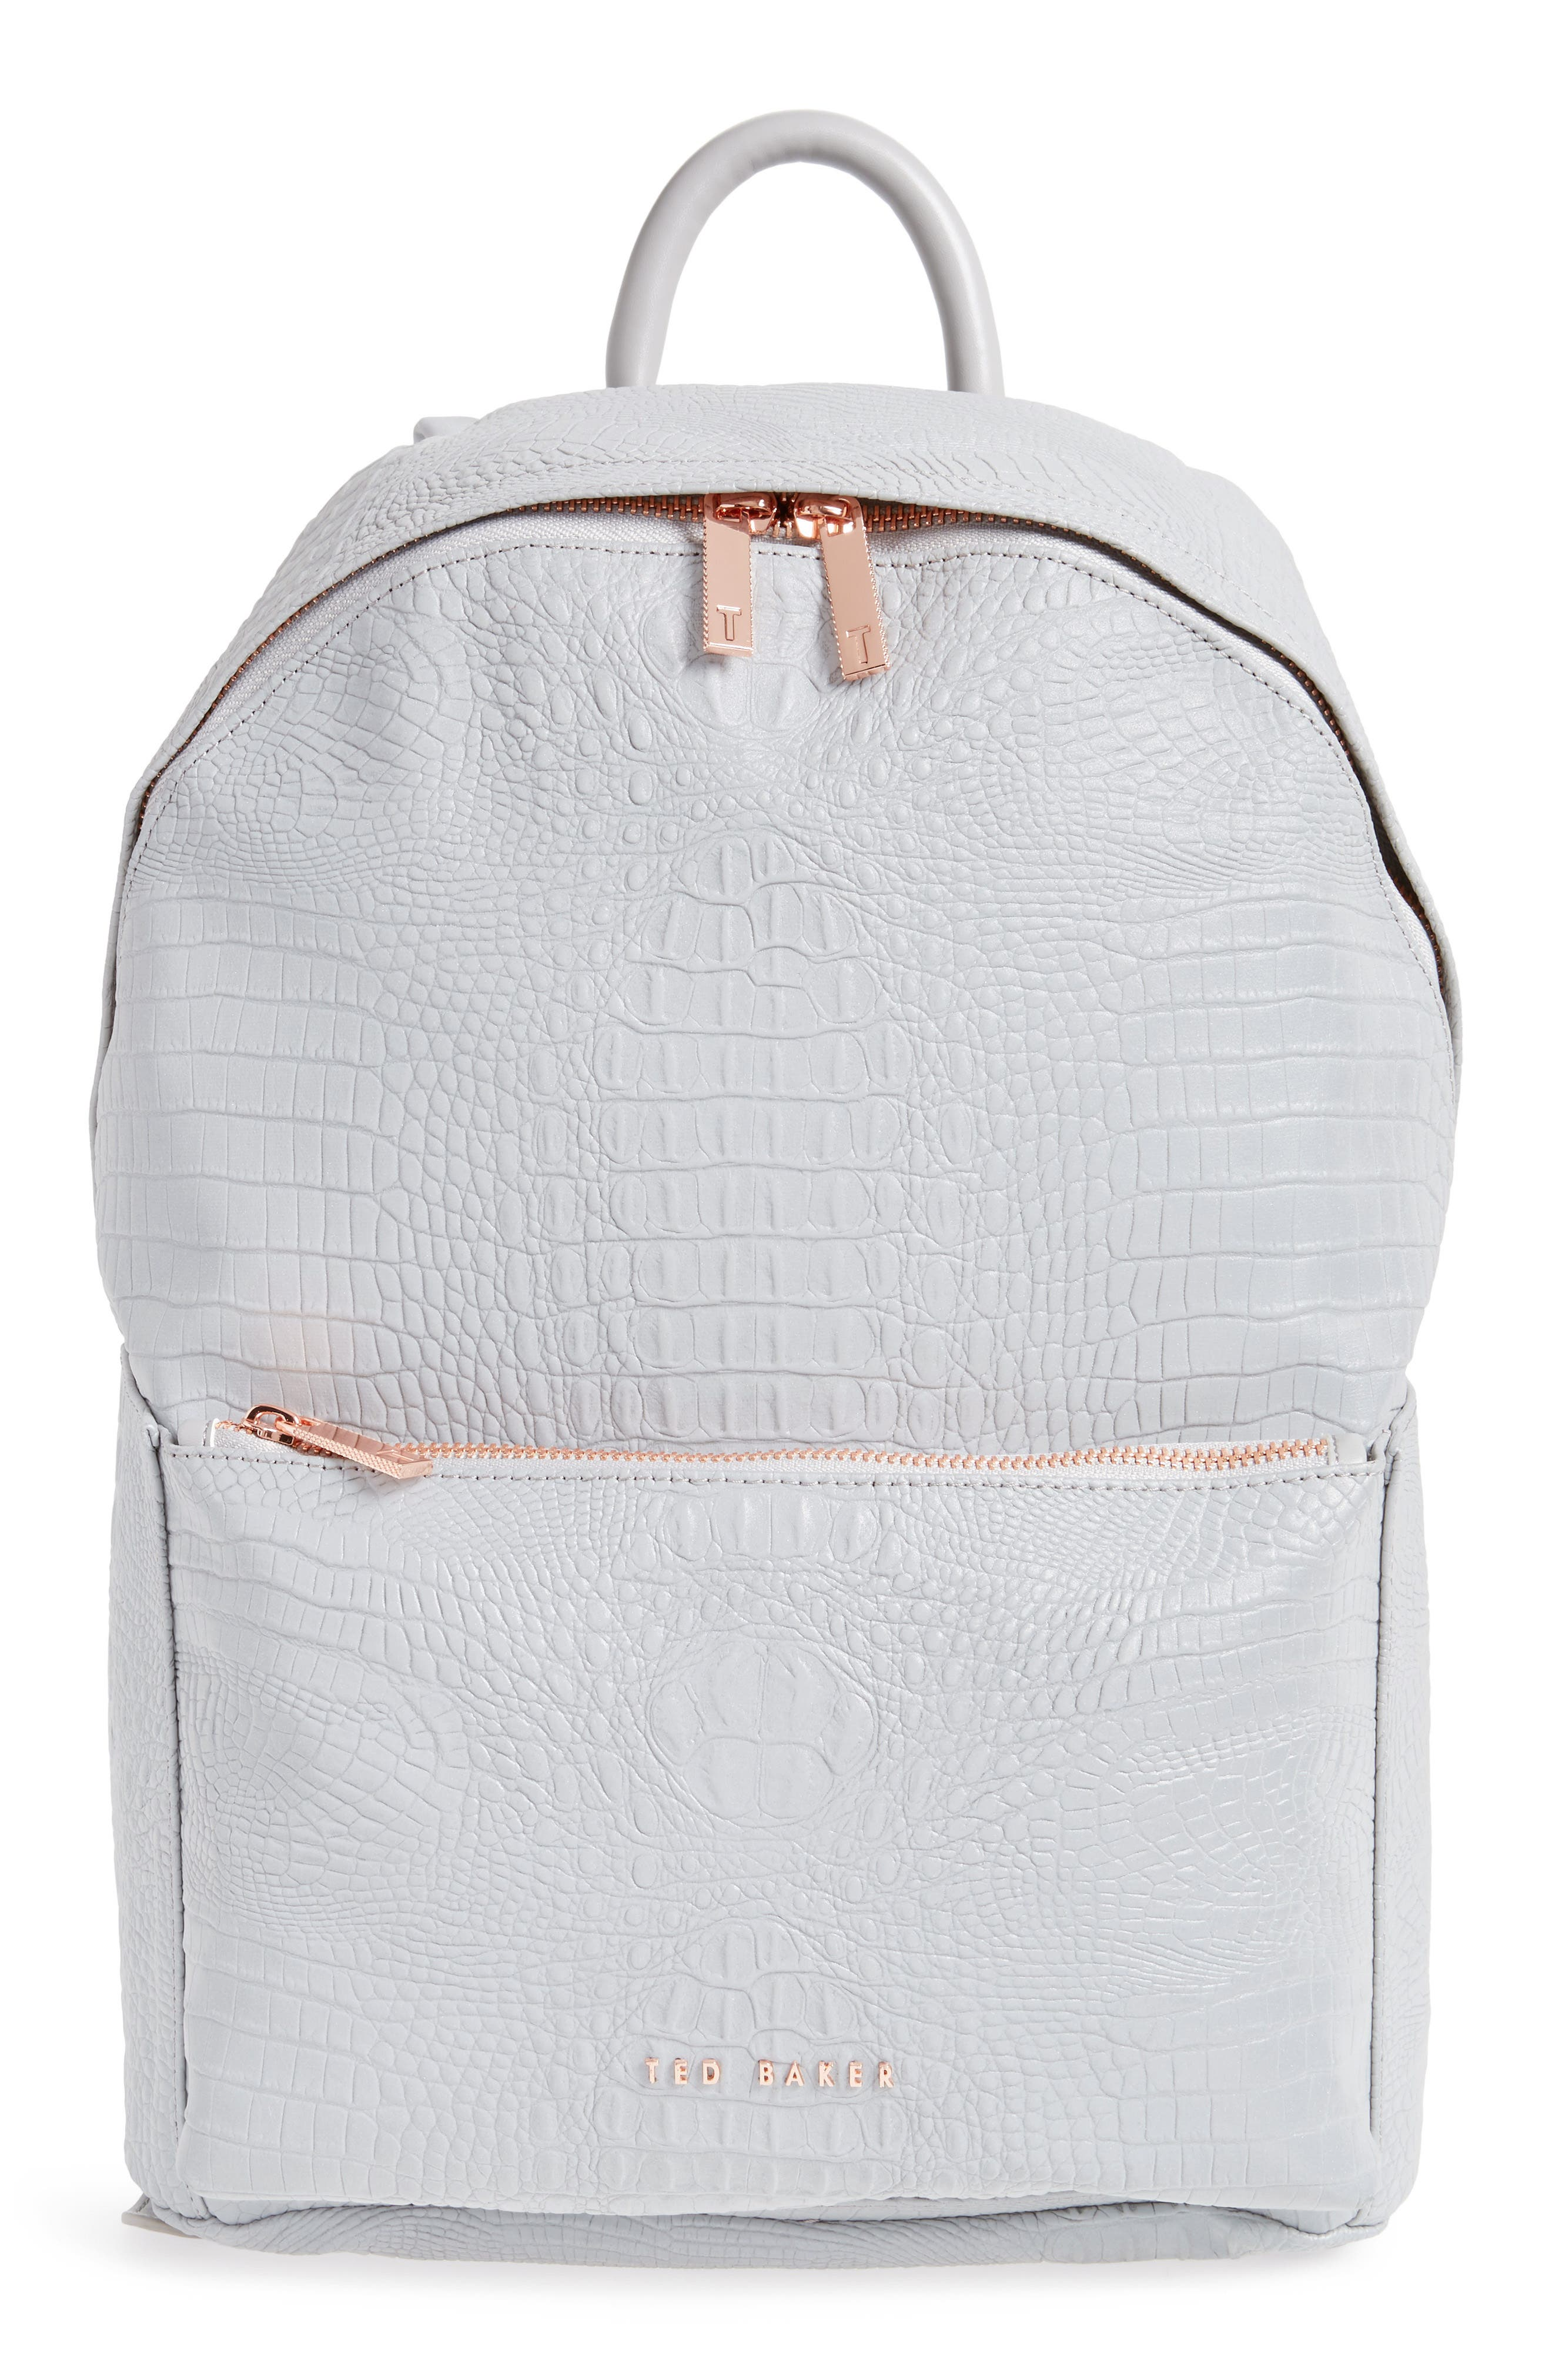 Ted Baker London Rahri Reflective Croc Embossed Faux Leather Backpack